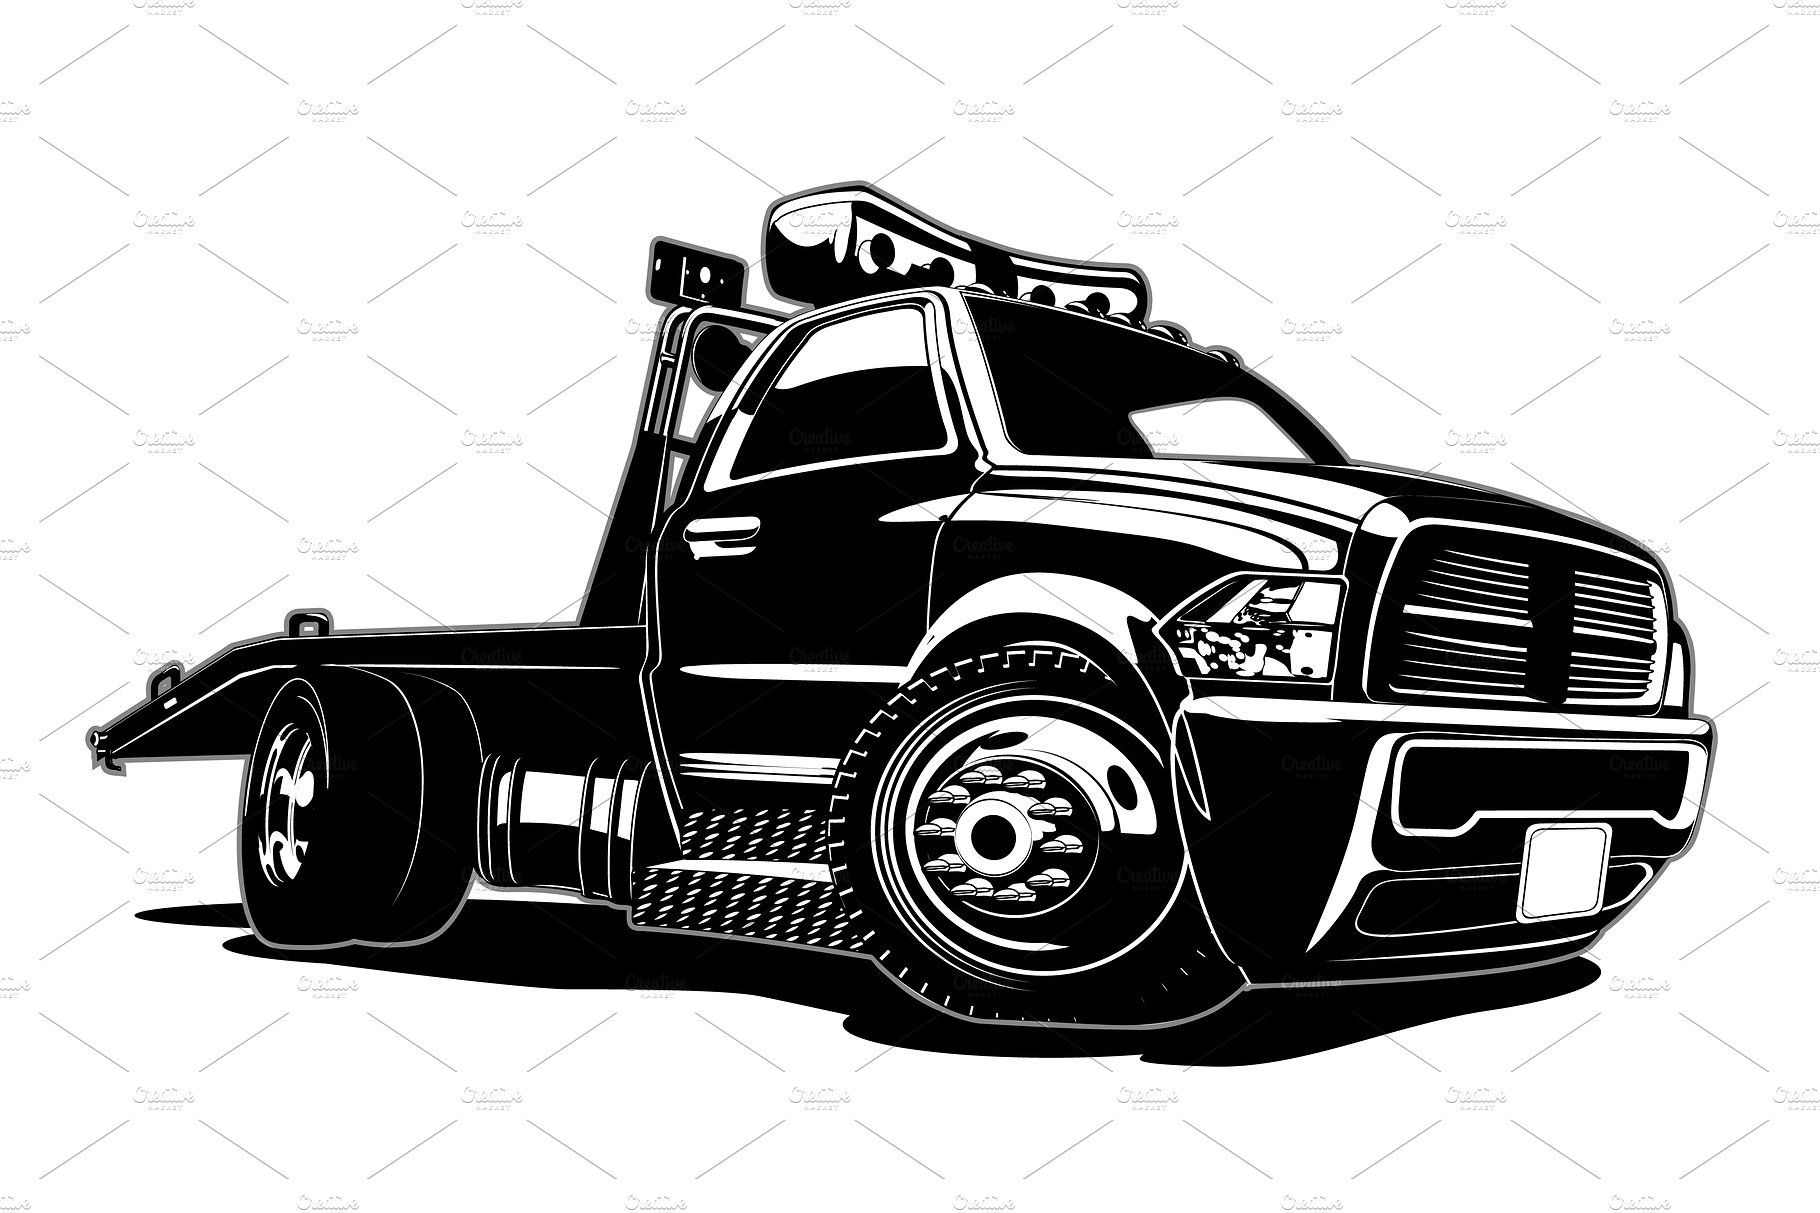 Cartoon Tow Truck With Images Tow Truck Towing Cartoon